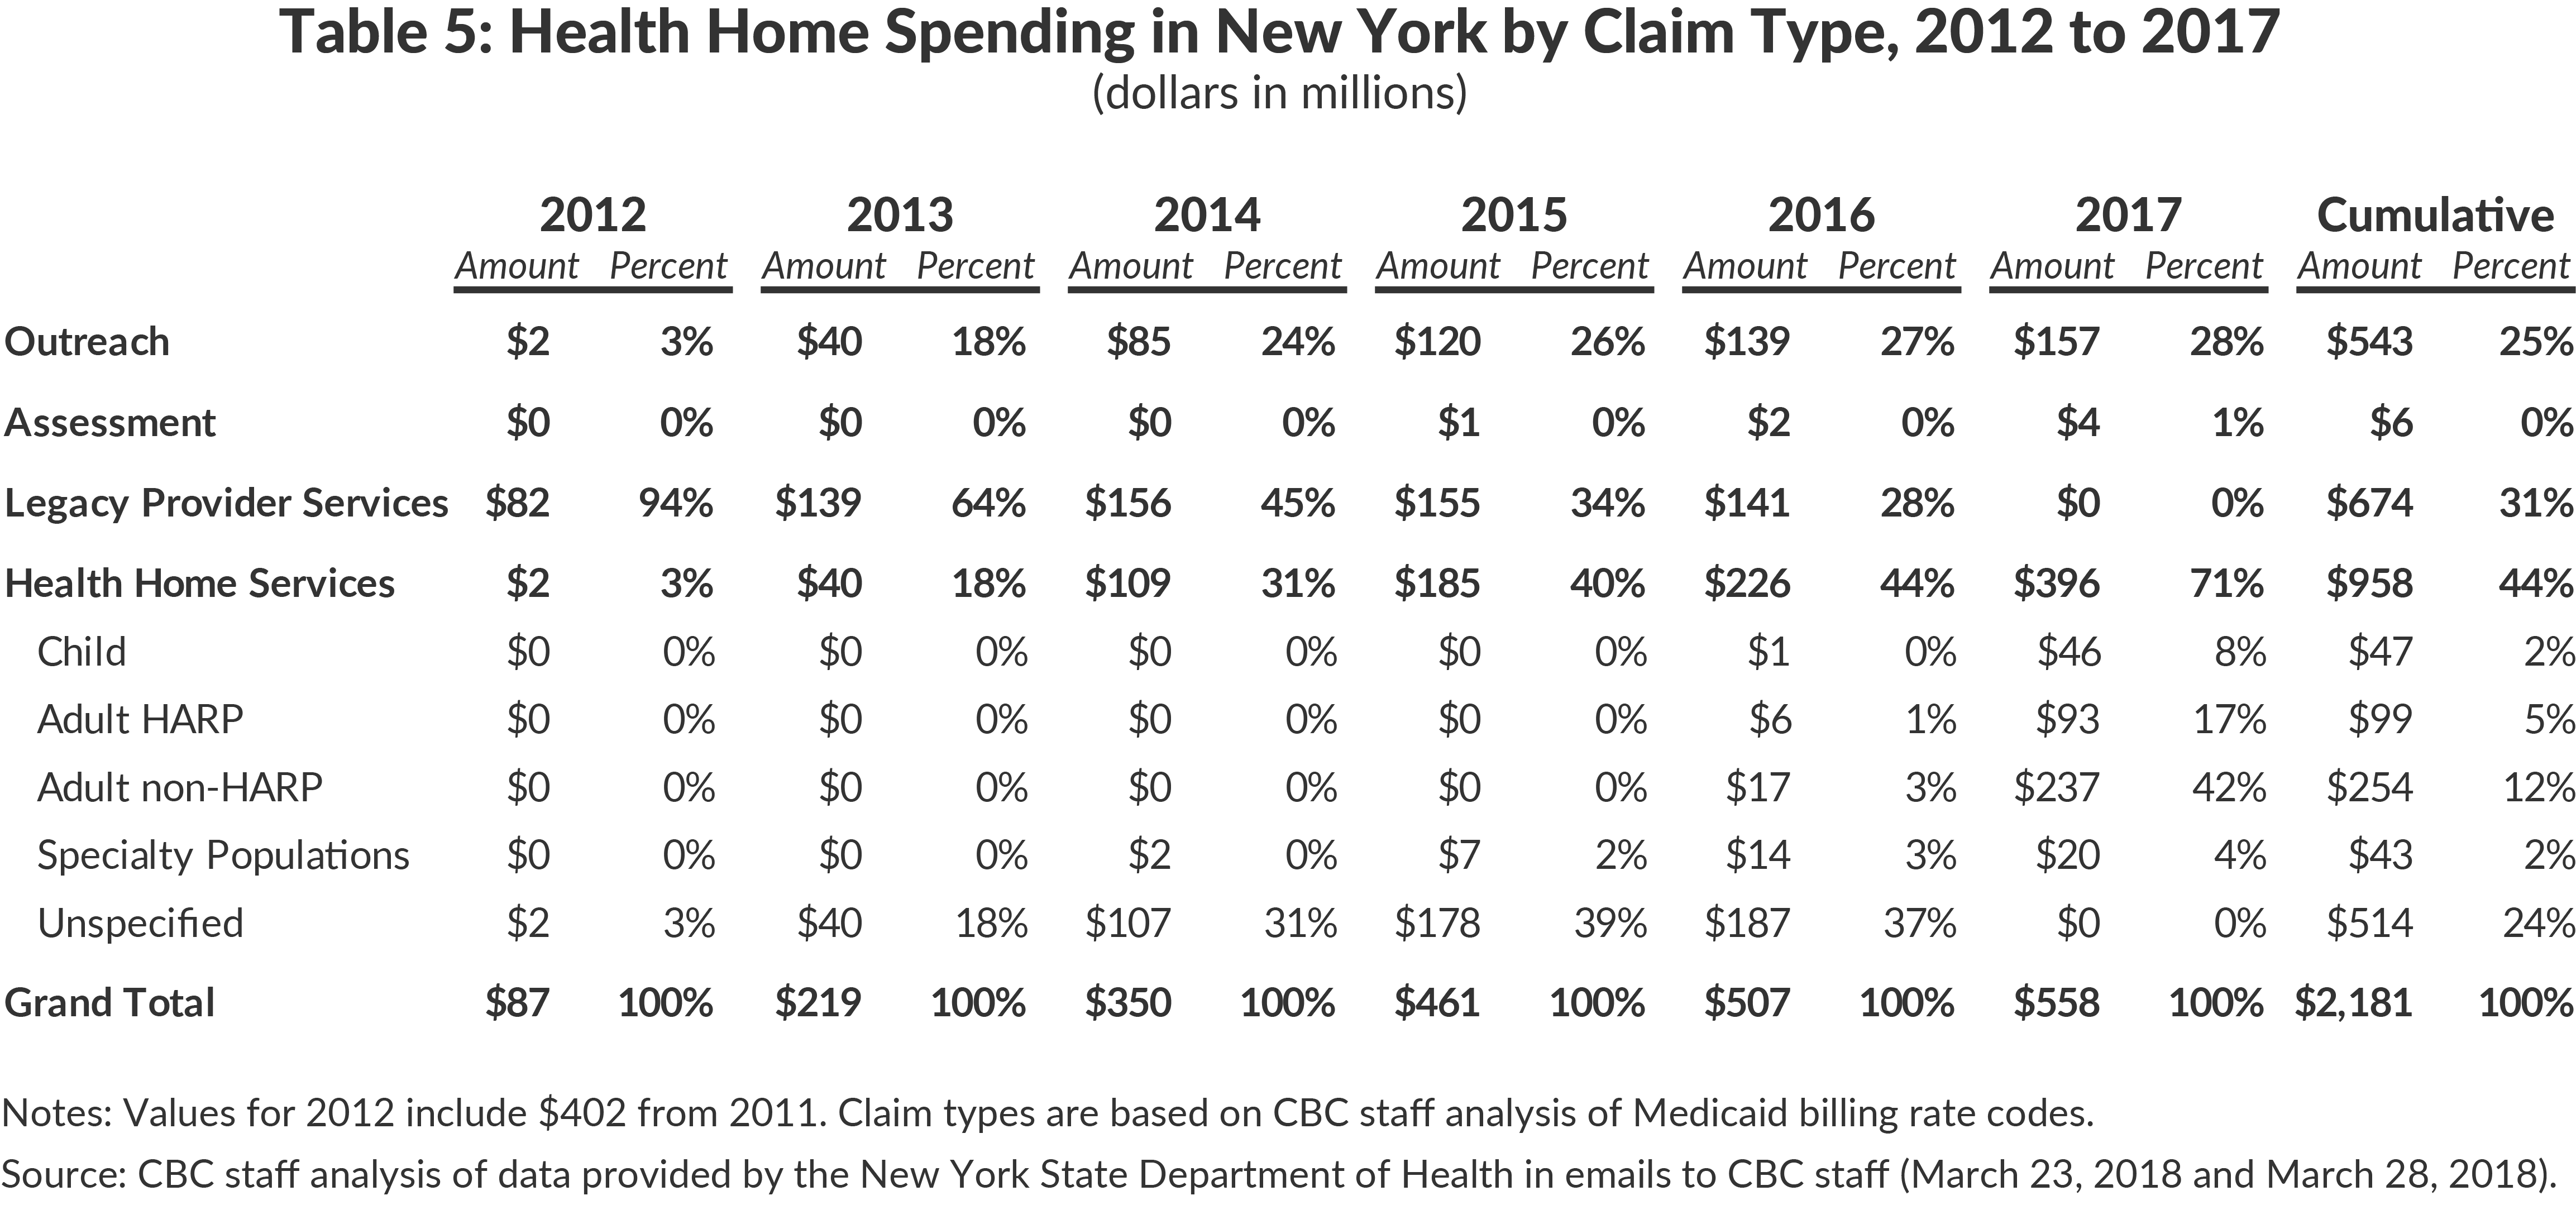 Table 5: Health Home Spending in New York by Claim Type, 2012 to 2017